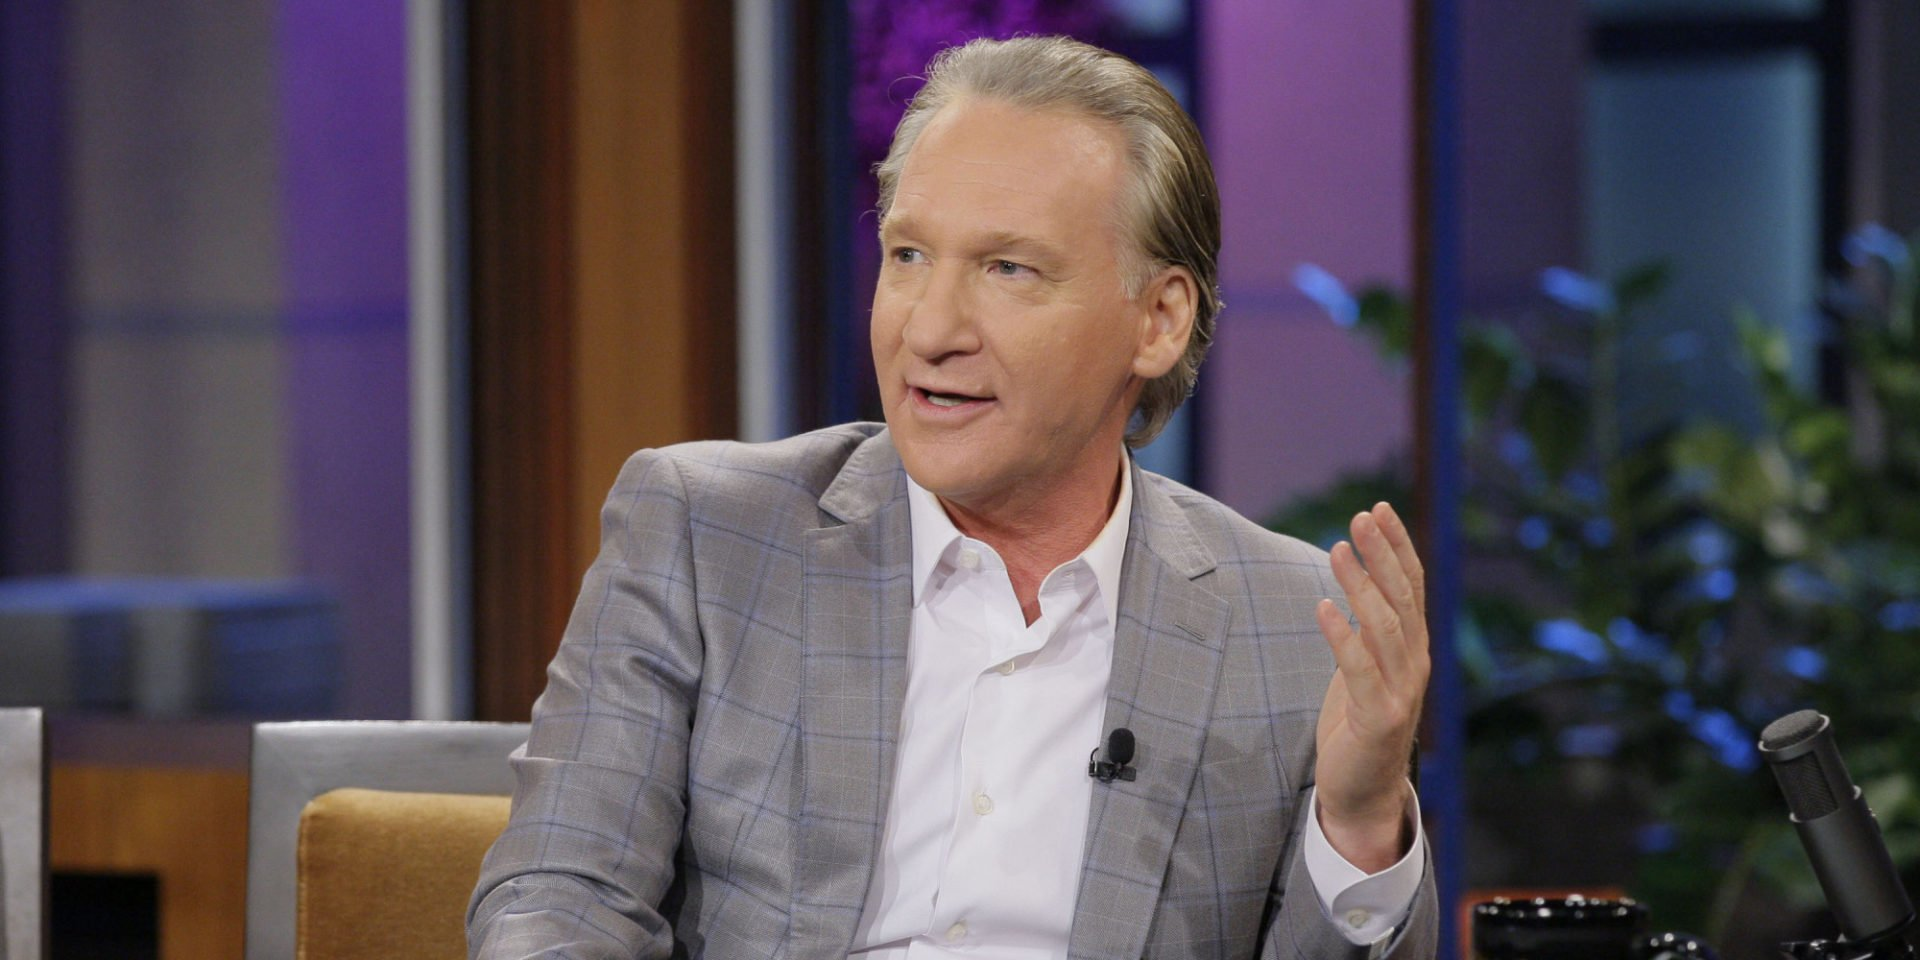 WATCH Bill Maher calls out liberal hypocrisy in response to Trumps North Korea meeting announcement